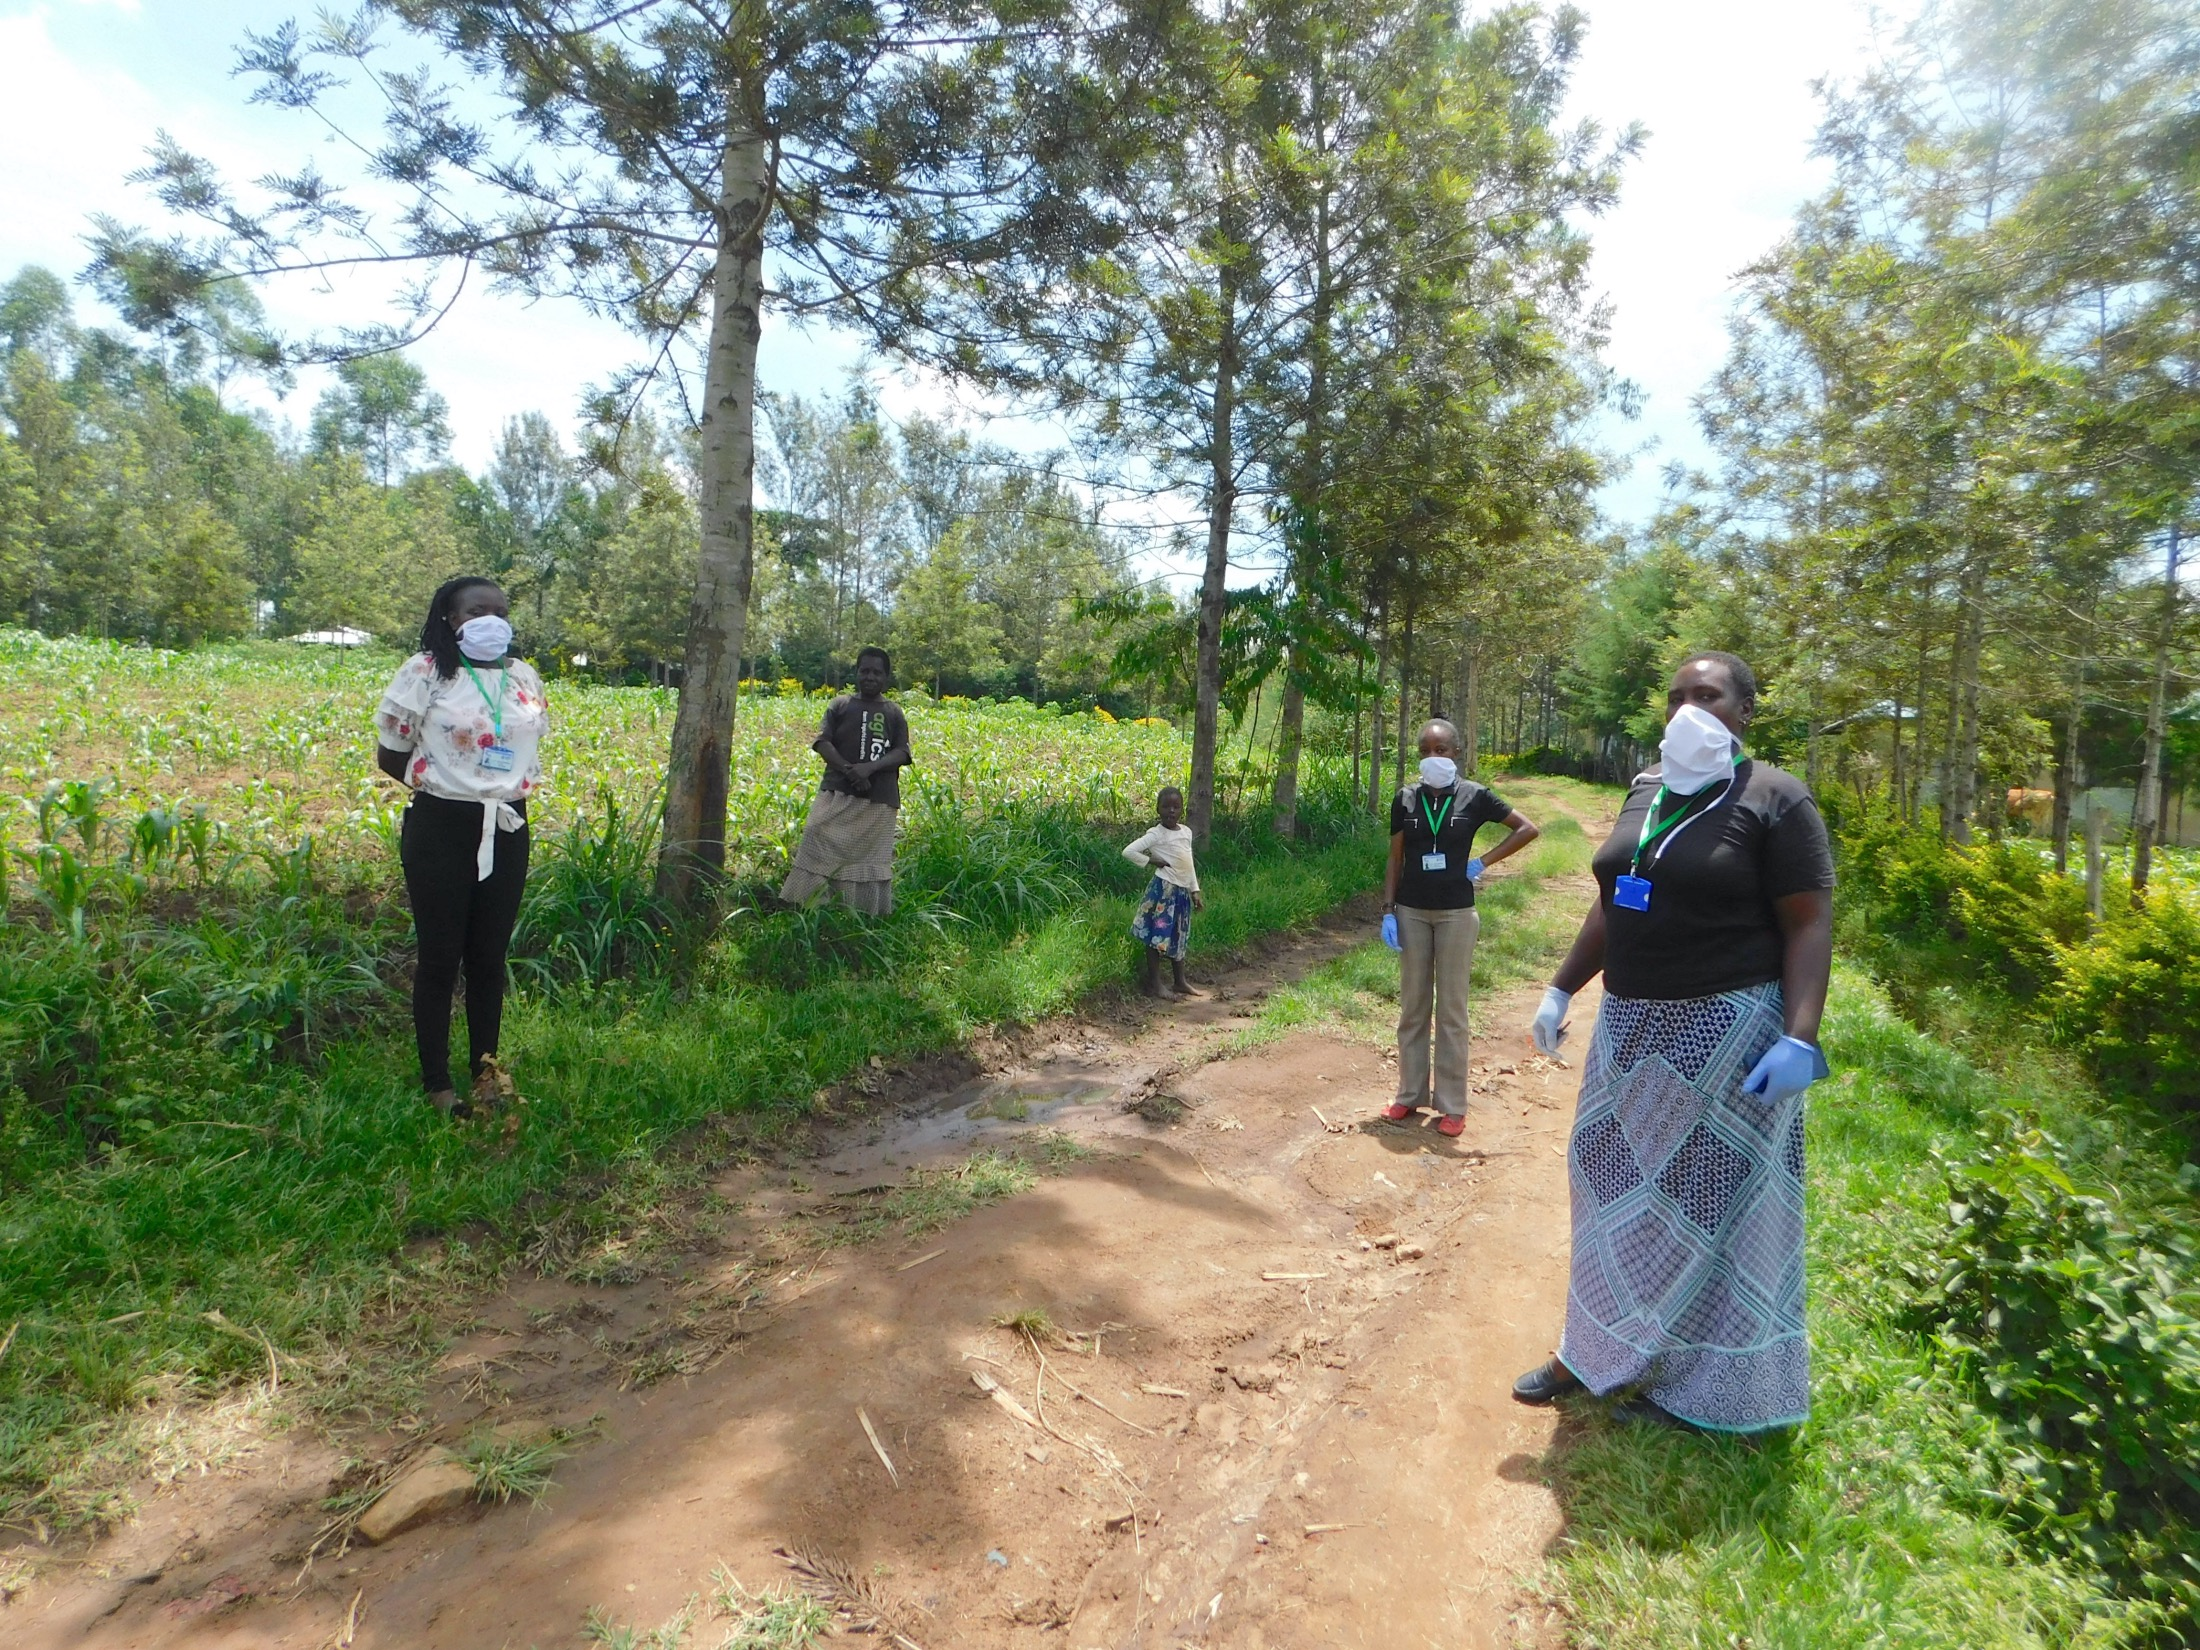 The Water Project : 1-covid19-kenya19182-facilitators-in-full-protective-gear-at-training